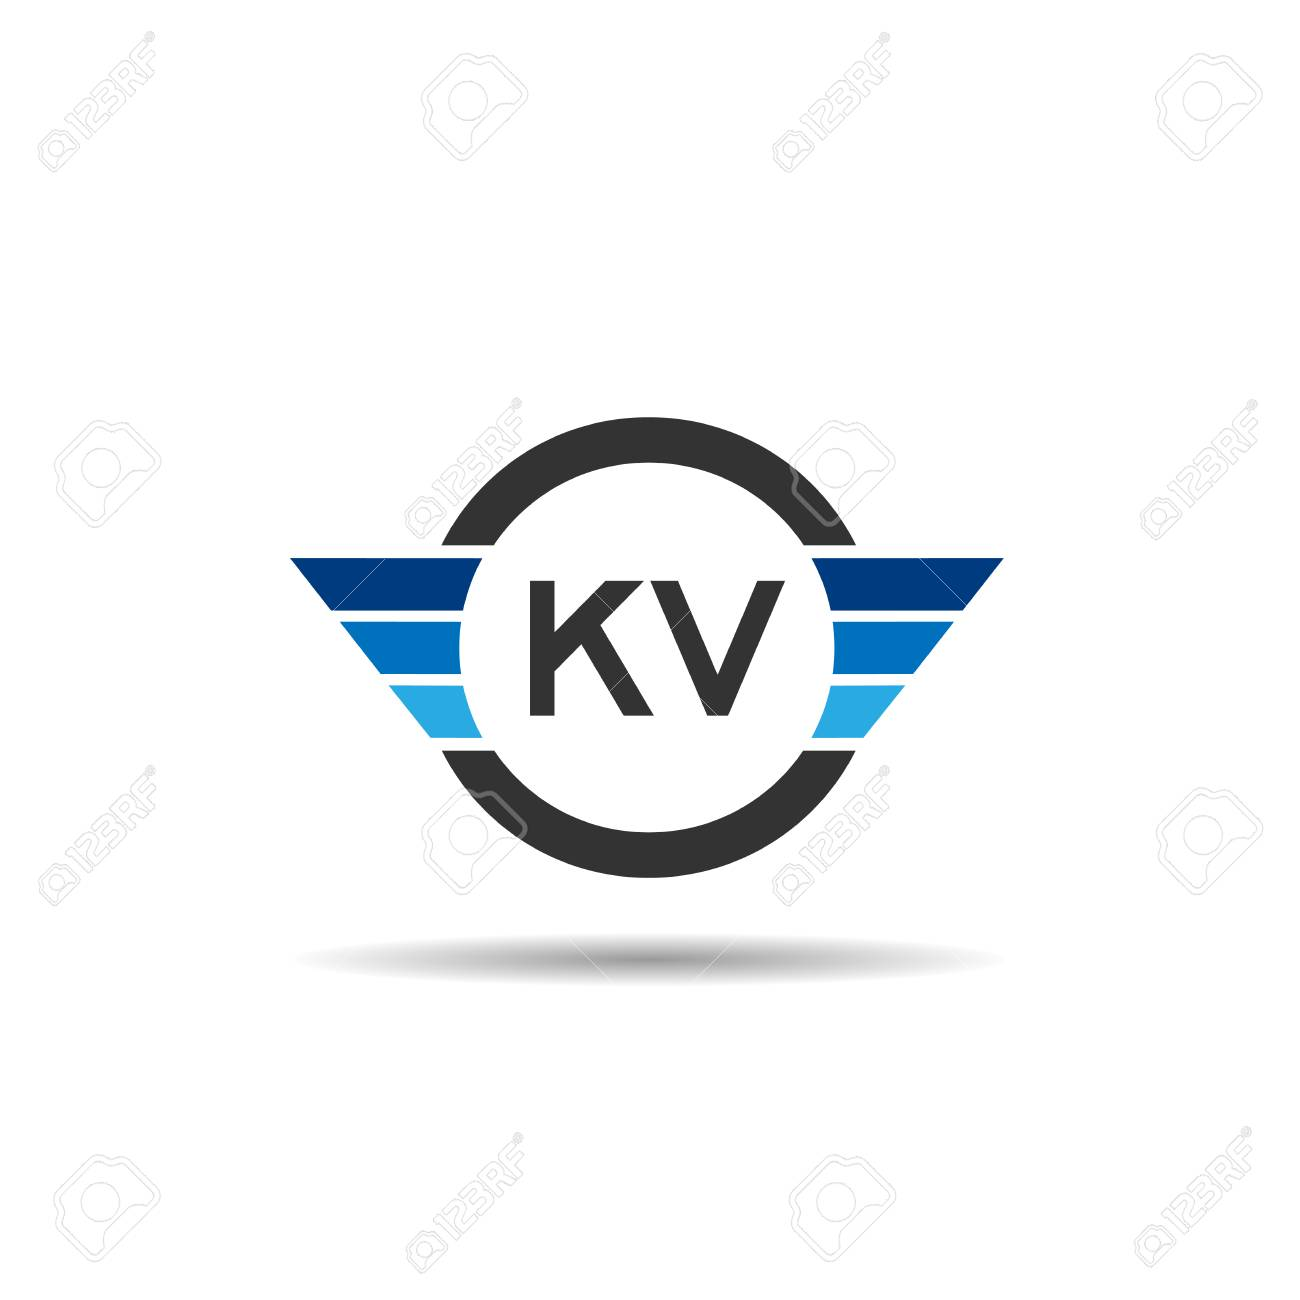 Initial Letter Kv Logo Template Design Royalty Free Cliparts Vectors And Stock Illustration Image 109595662